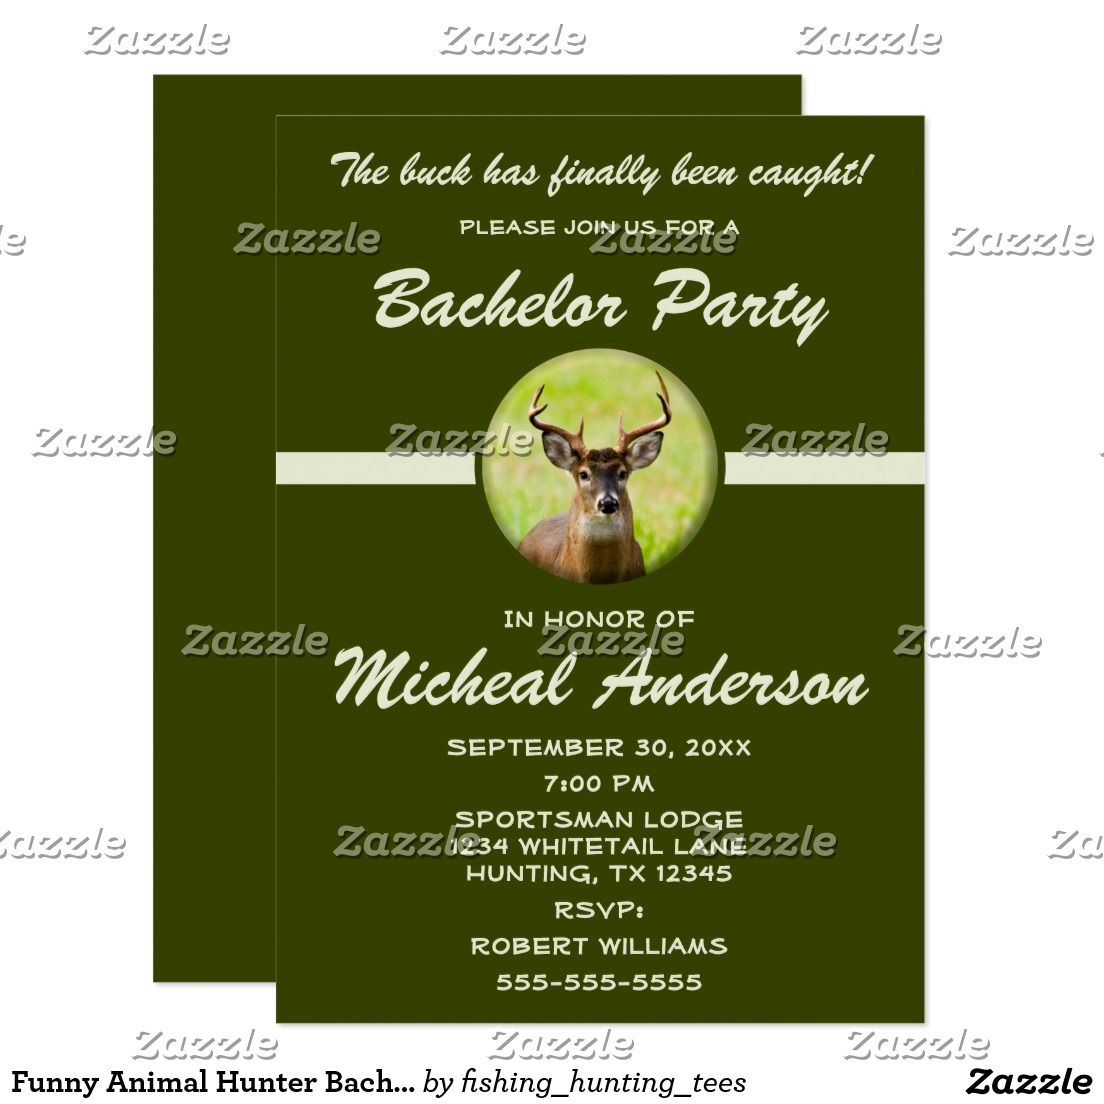 Funny animal hunter bachelor stag party invitation party funny animal hunter bachelor stag party invitation monicamarmolfo Choice Image